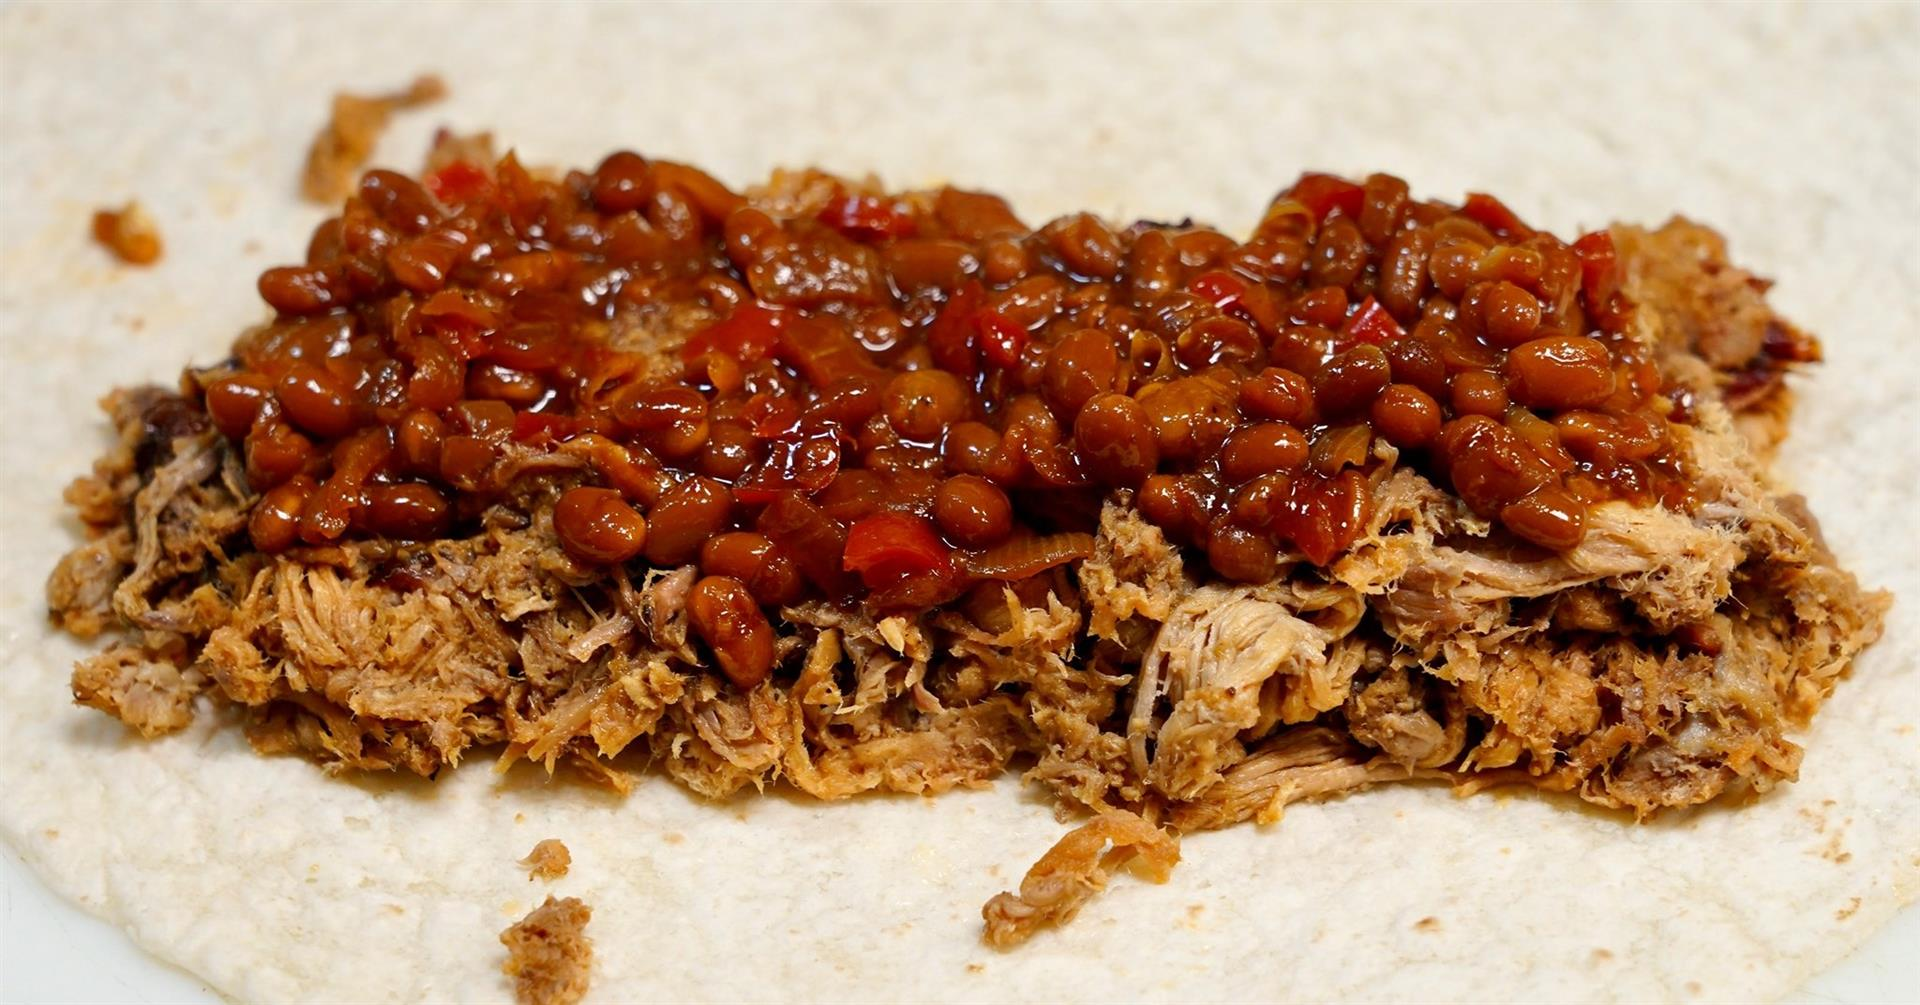 pulled pork topped with chili and beans